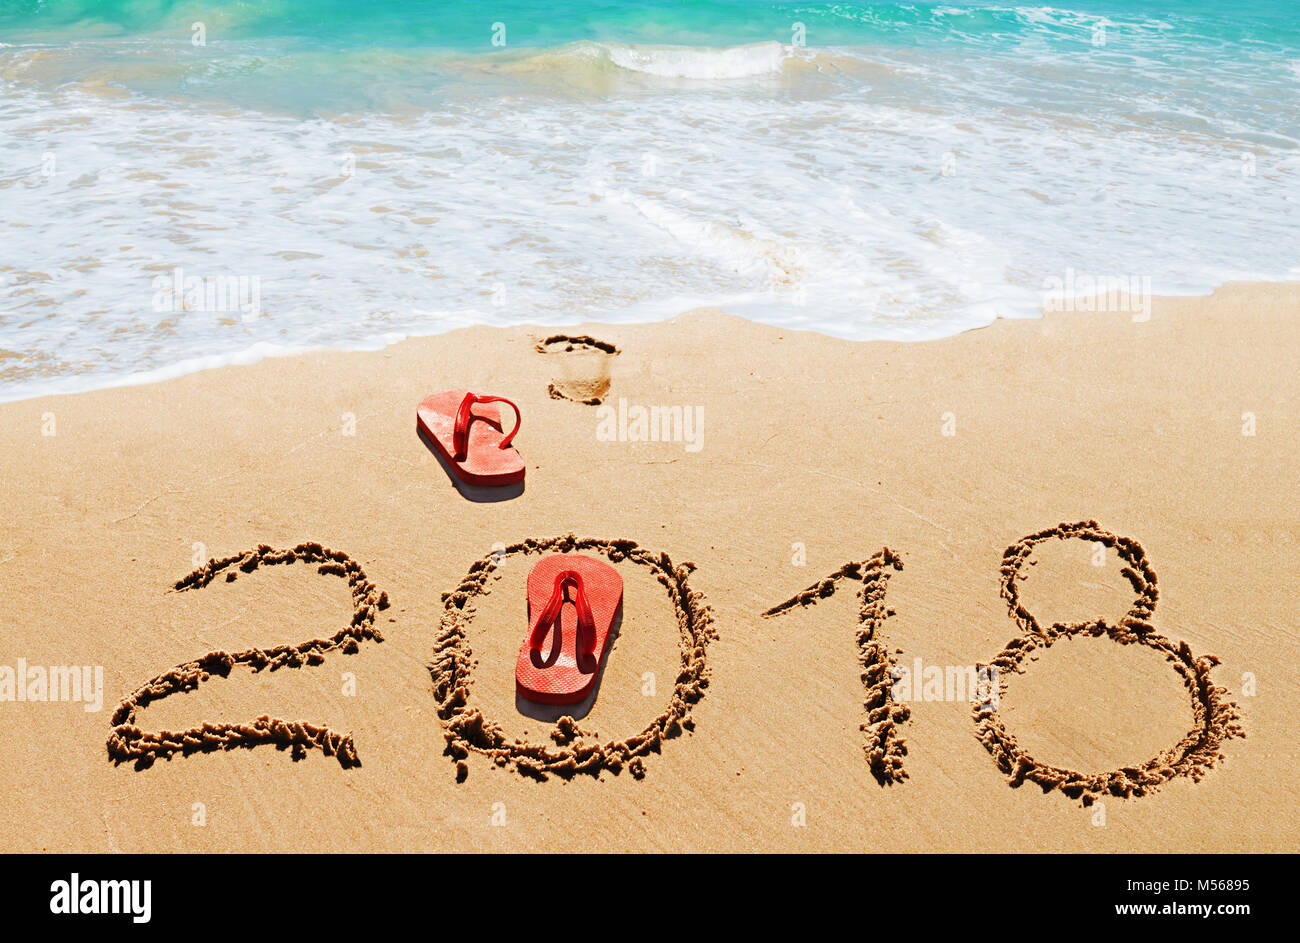 Red flip flops and digits 2018 on the beach - Stock Image